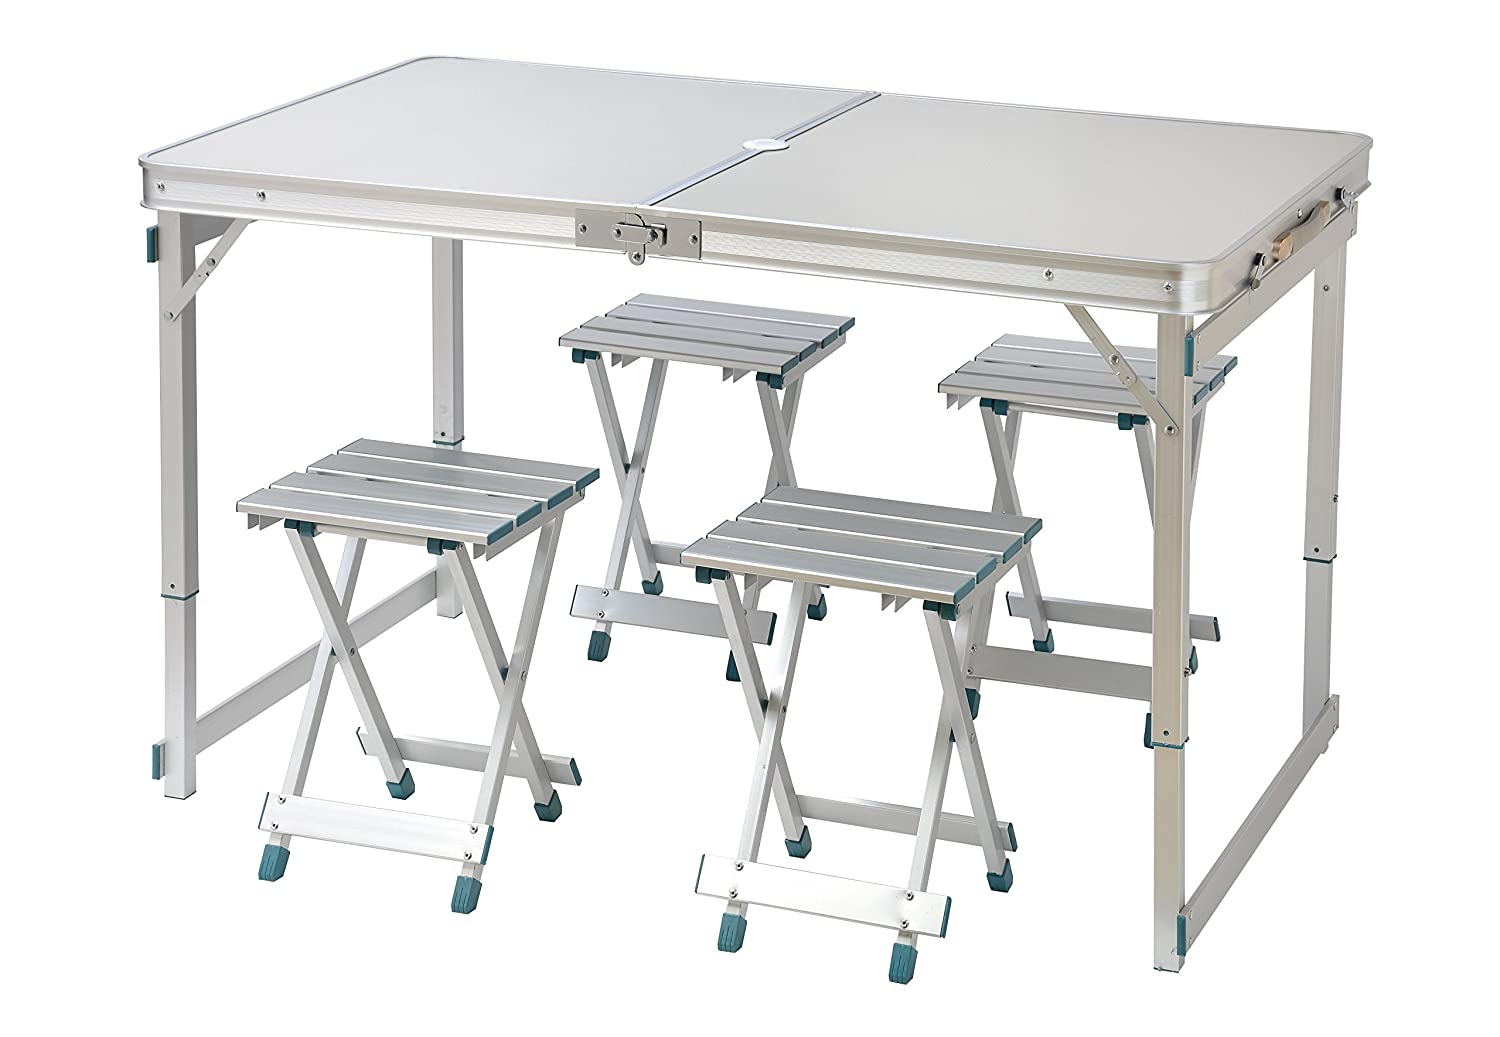 Trademark Innovations 47.2 4 Person Aluminum Lightweight Folding Camp Table with 4 Folding Stools